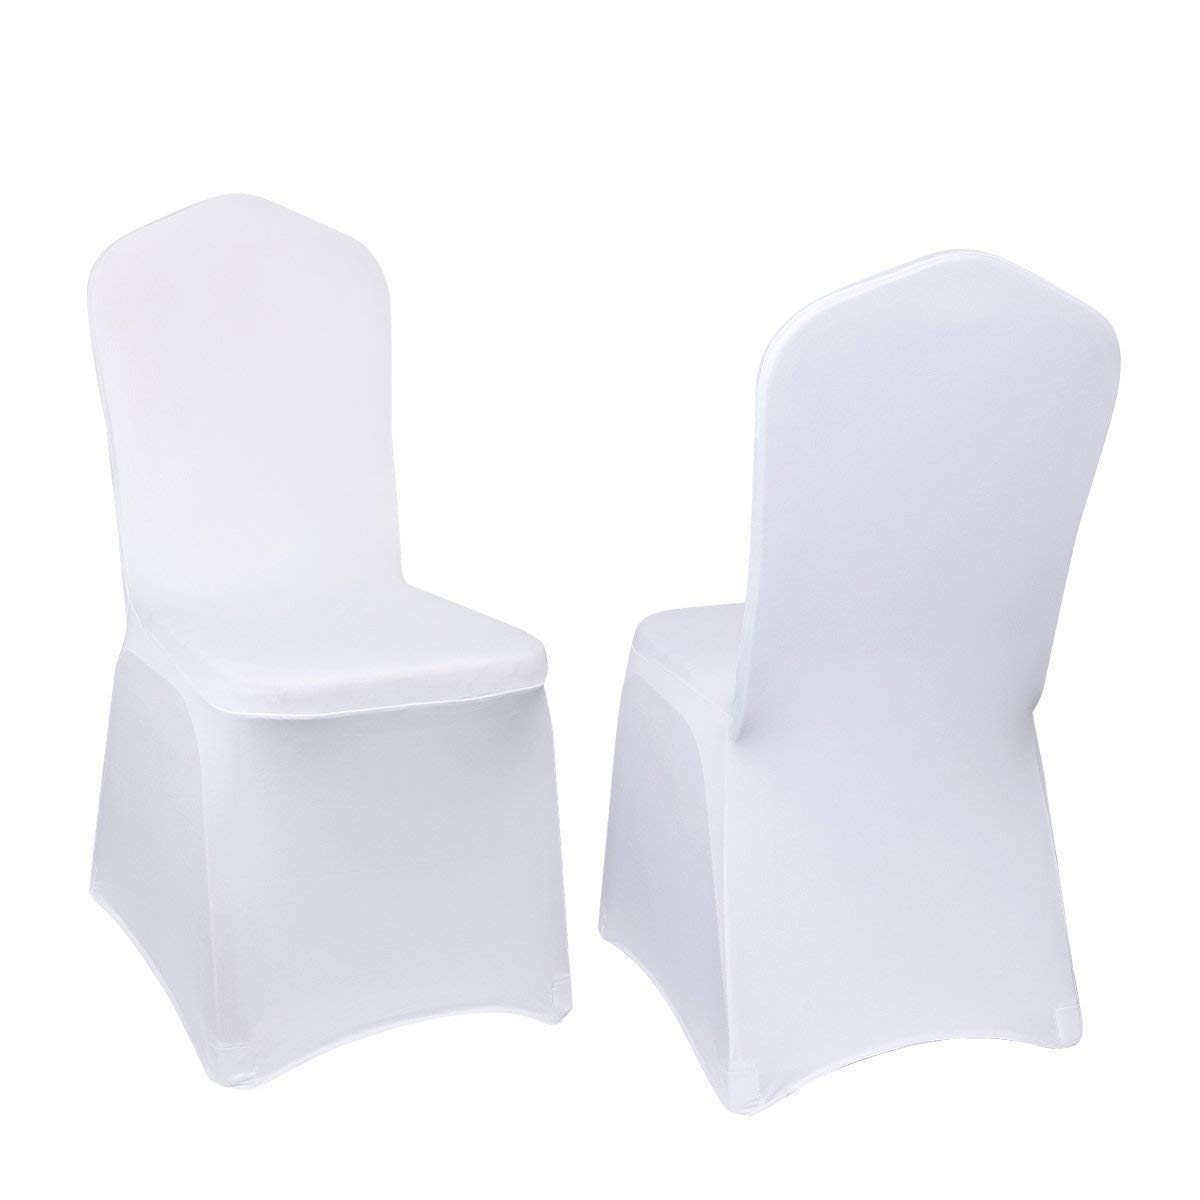 Stupendous Vevor 100 Pcs White Chair Covers Polyester Spandex Chair Cover Stretch Slipcovers For Wedding Party Dining Banquet Chair Decoration Covers Flat Chair Frankydiablos Diy Chair Ideas Frankydiabloscom